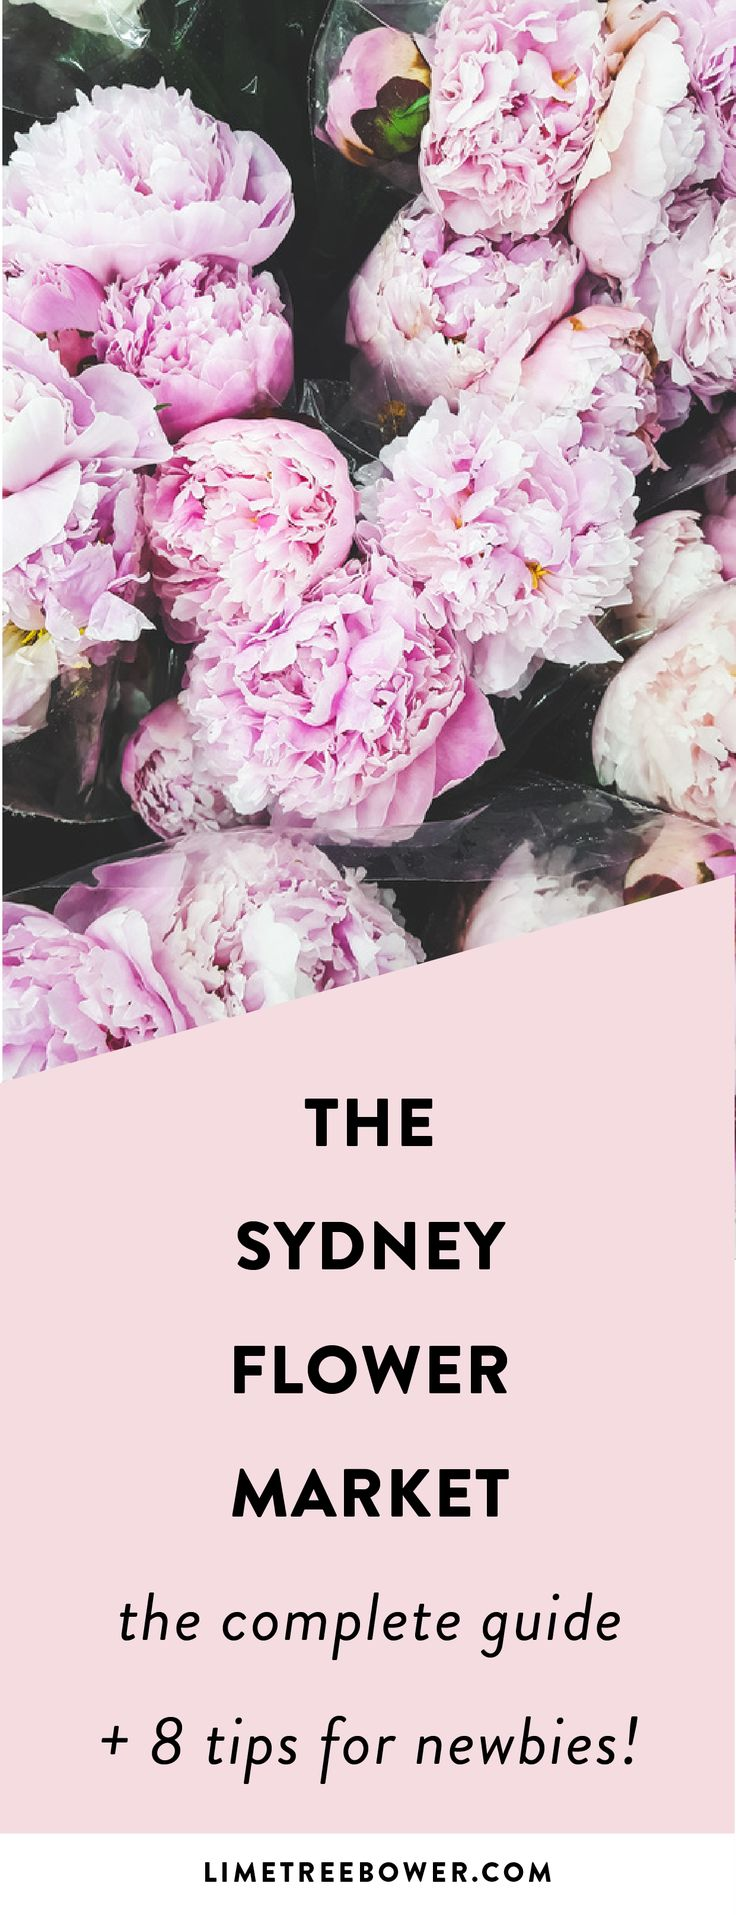 Sydney Flower Market Guide   Free Guide to the Sydney Flower Market for Beginners   Sydney Australia Flower Market   Lime Tree Bower